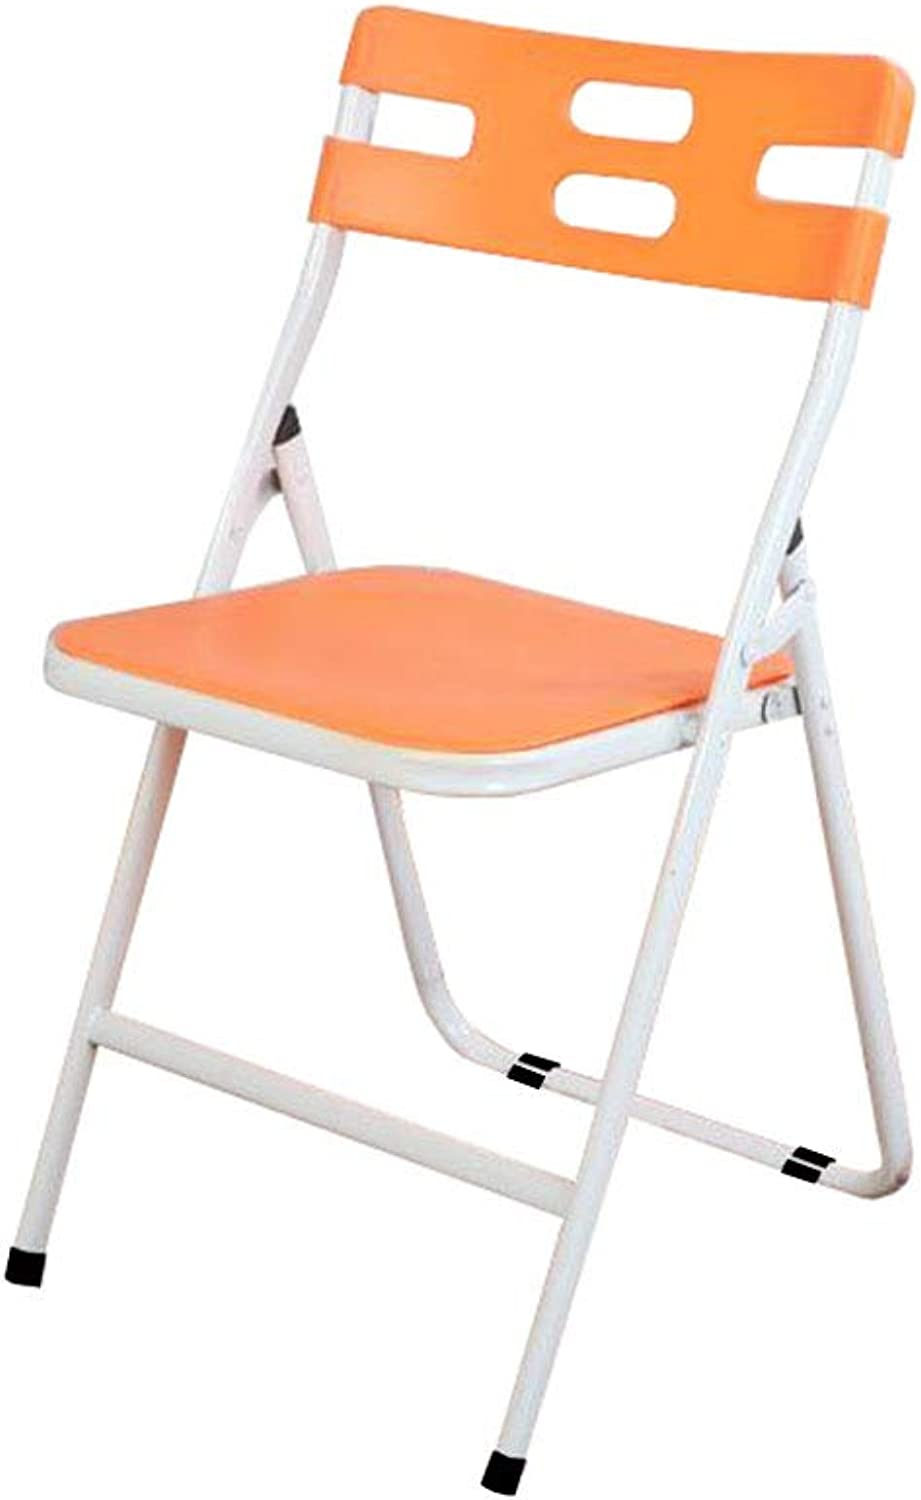 Folding Chair Office Desk Chair Staff orange Plastic Padded Student Training Modern